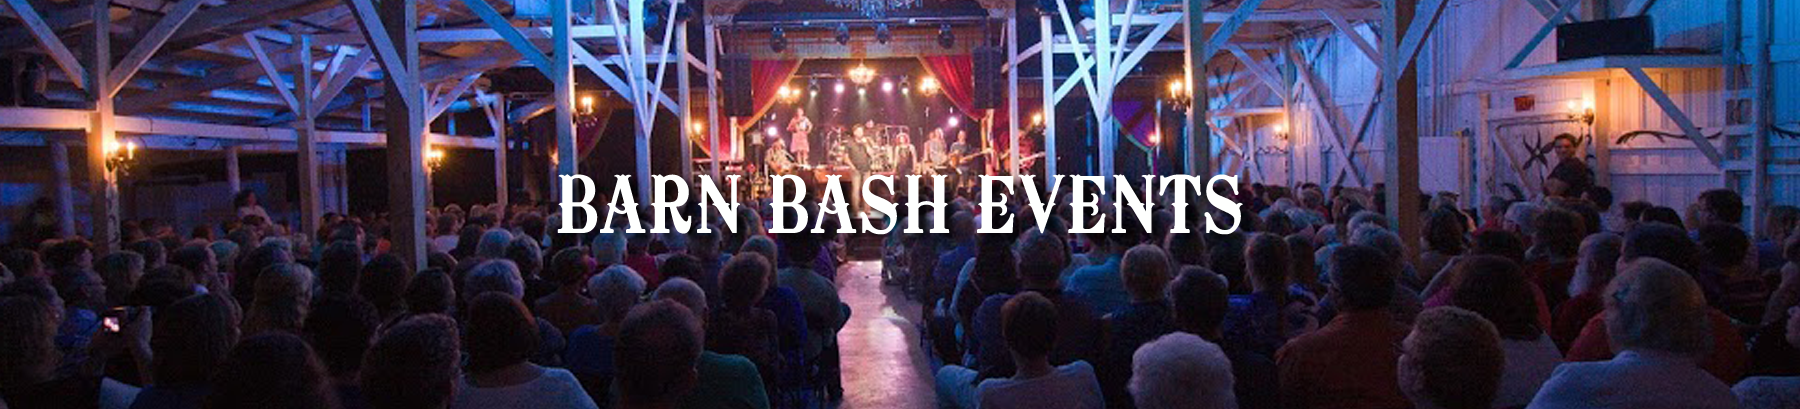 Barn Bash Events - David Phelps